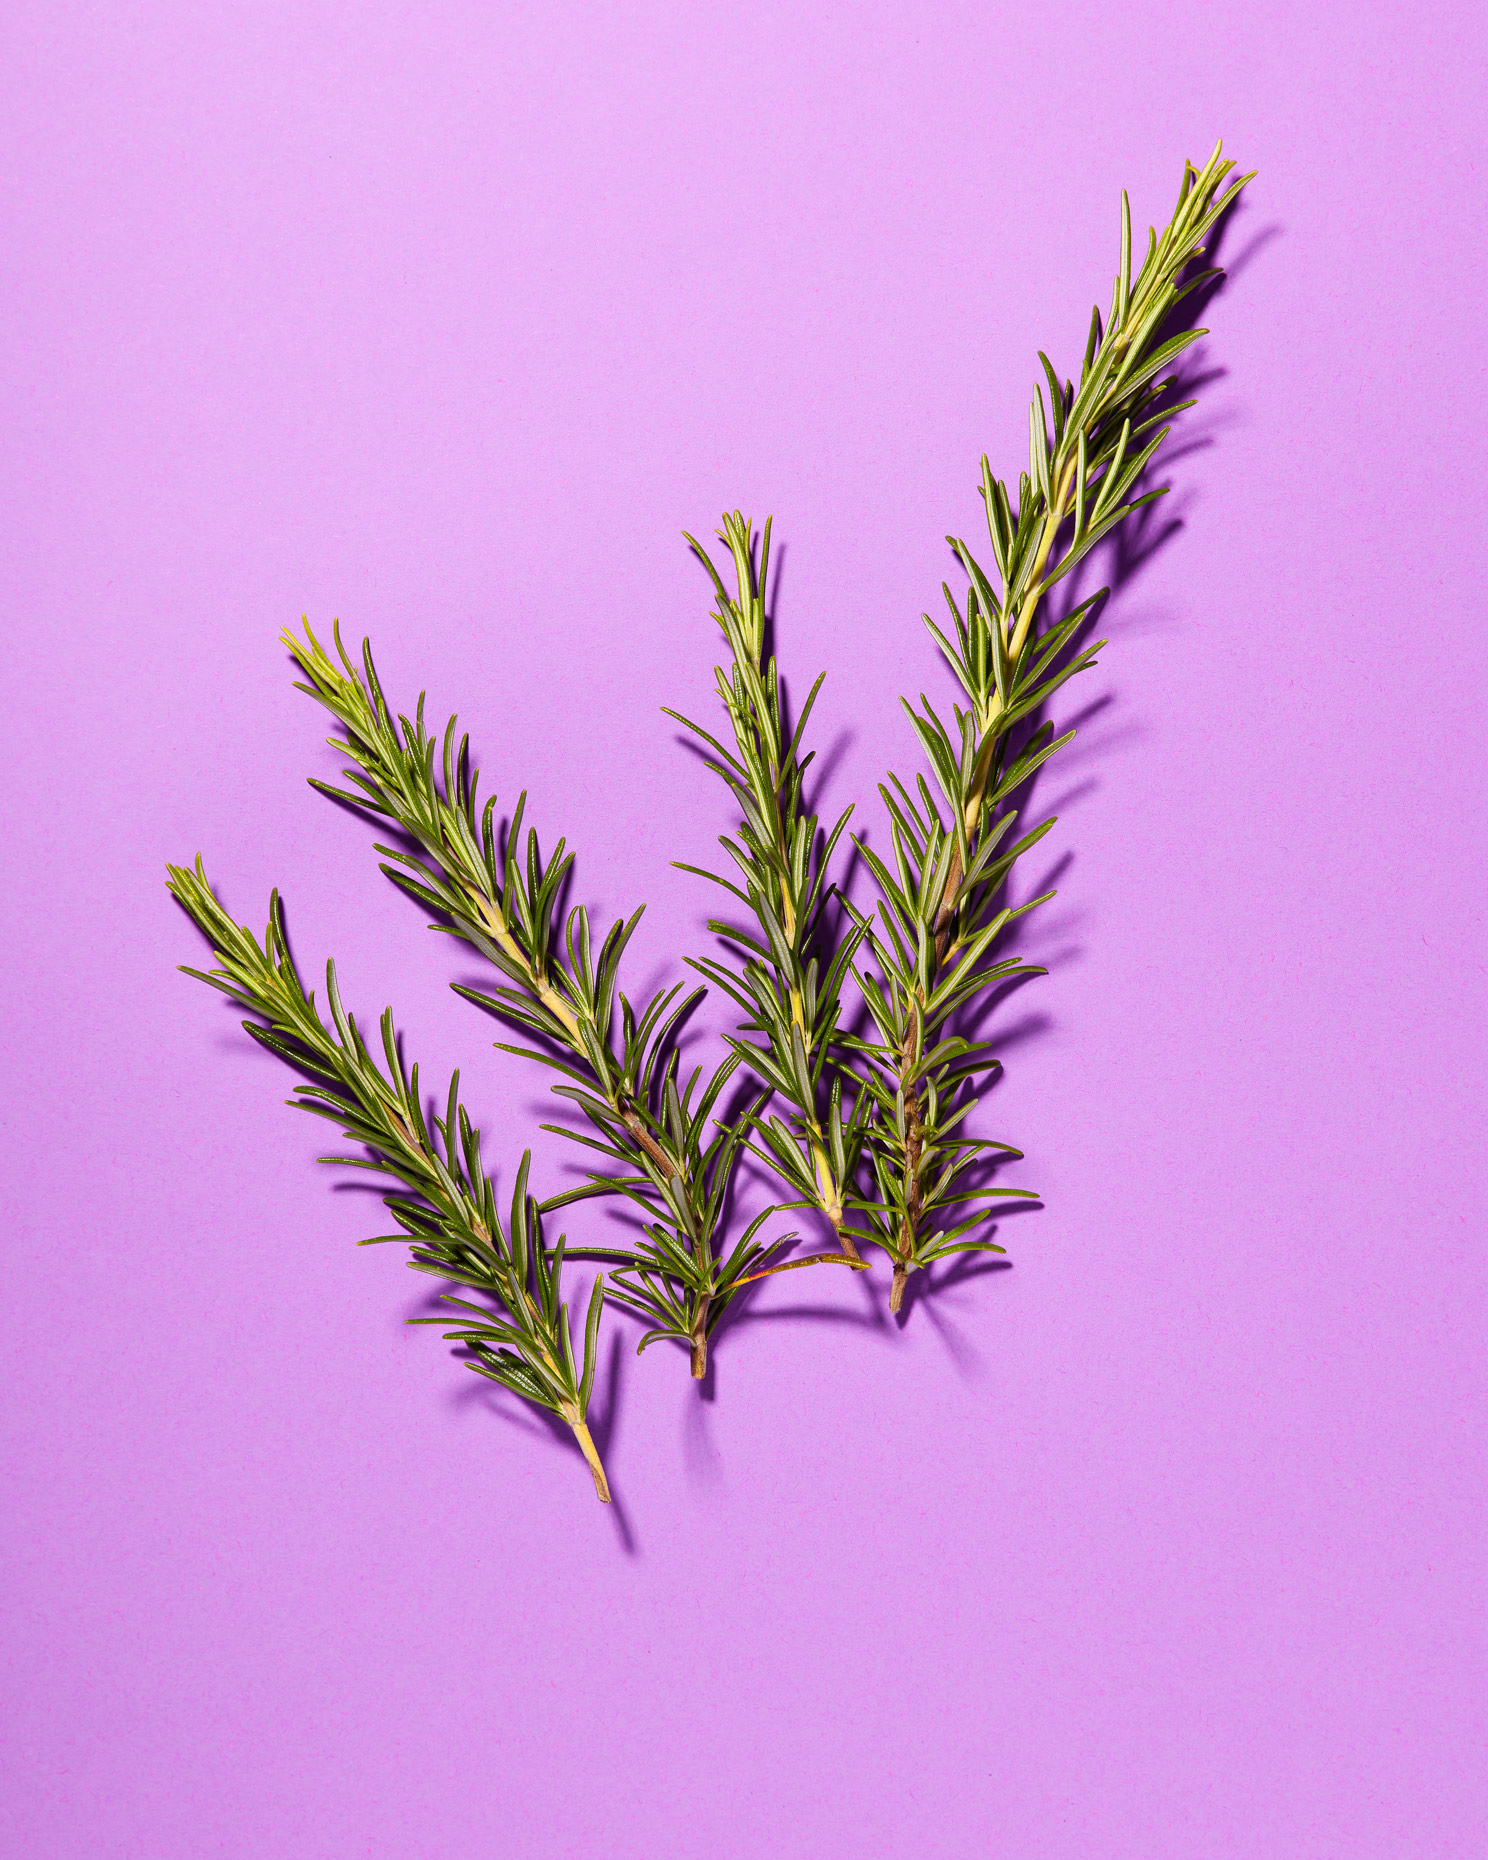 still life photography: sprigs of rosemary